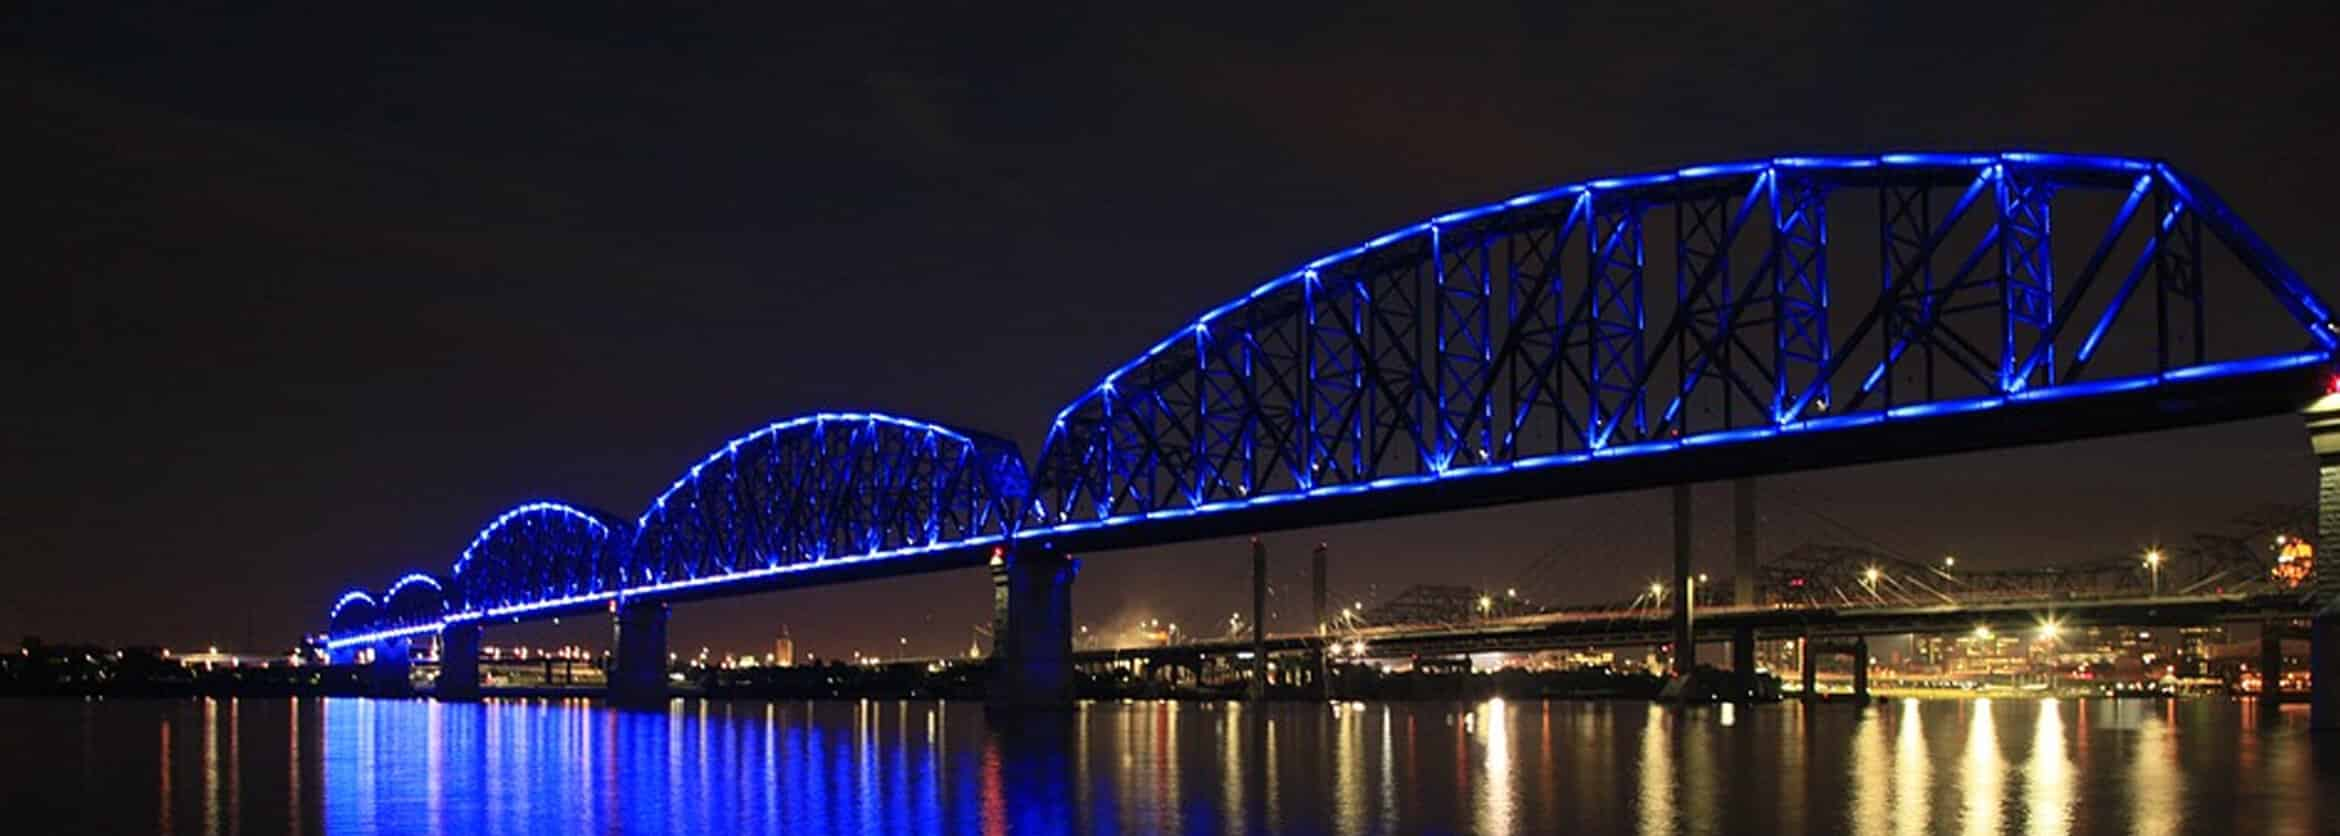 night time image of a bridge with blue lights